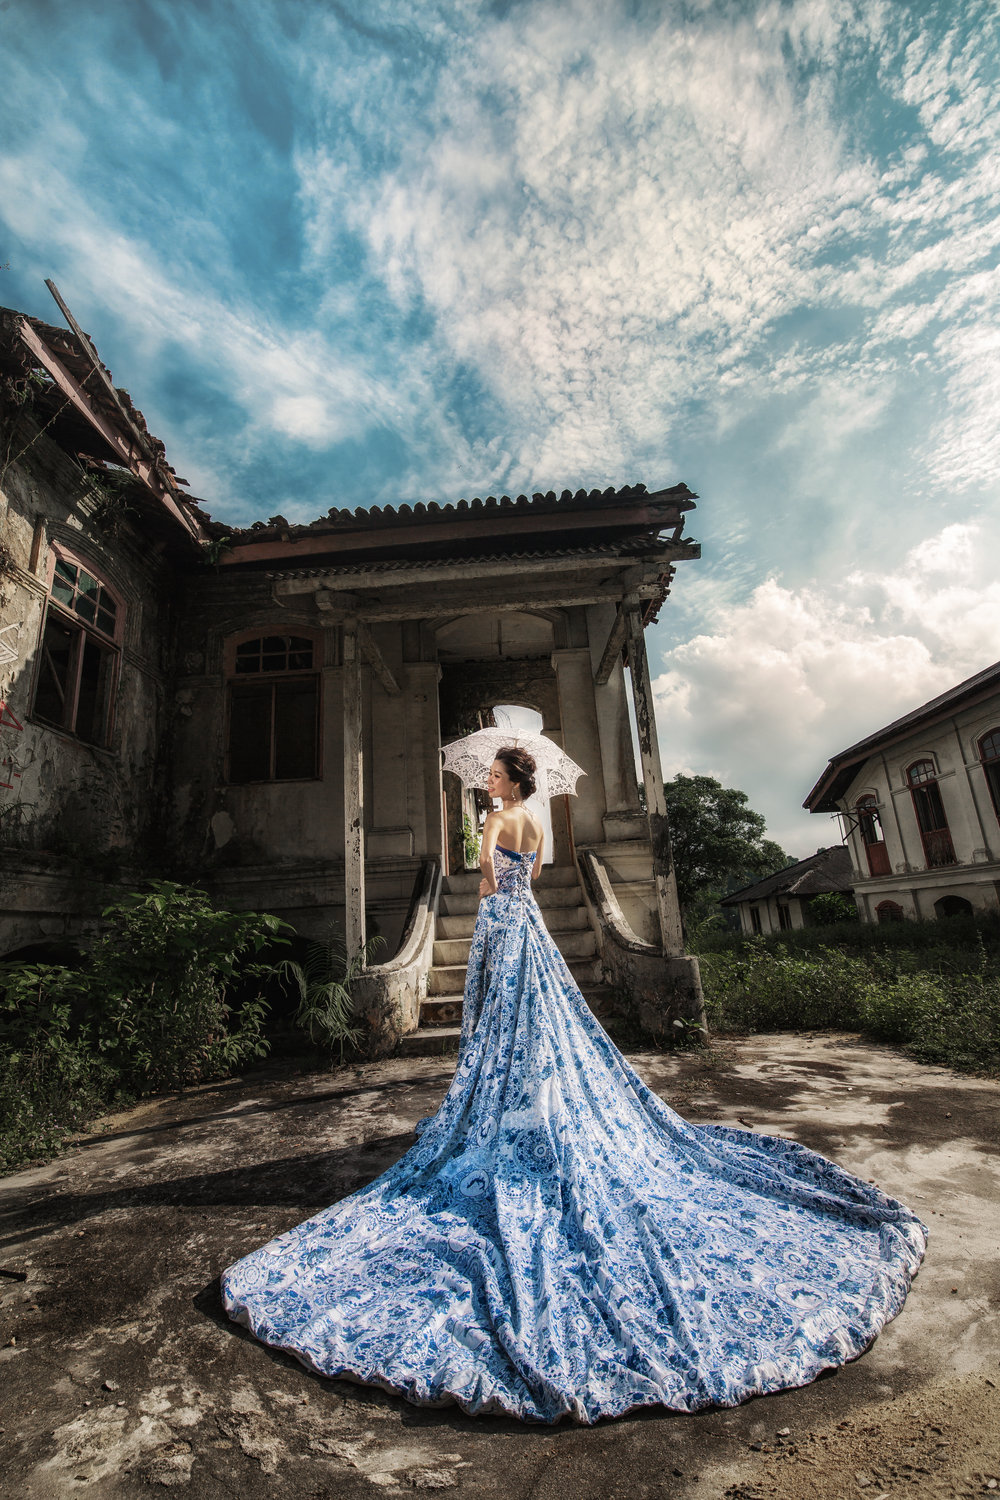 A really gorgeous piece of Jiebei at an old abandoned house.